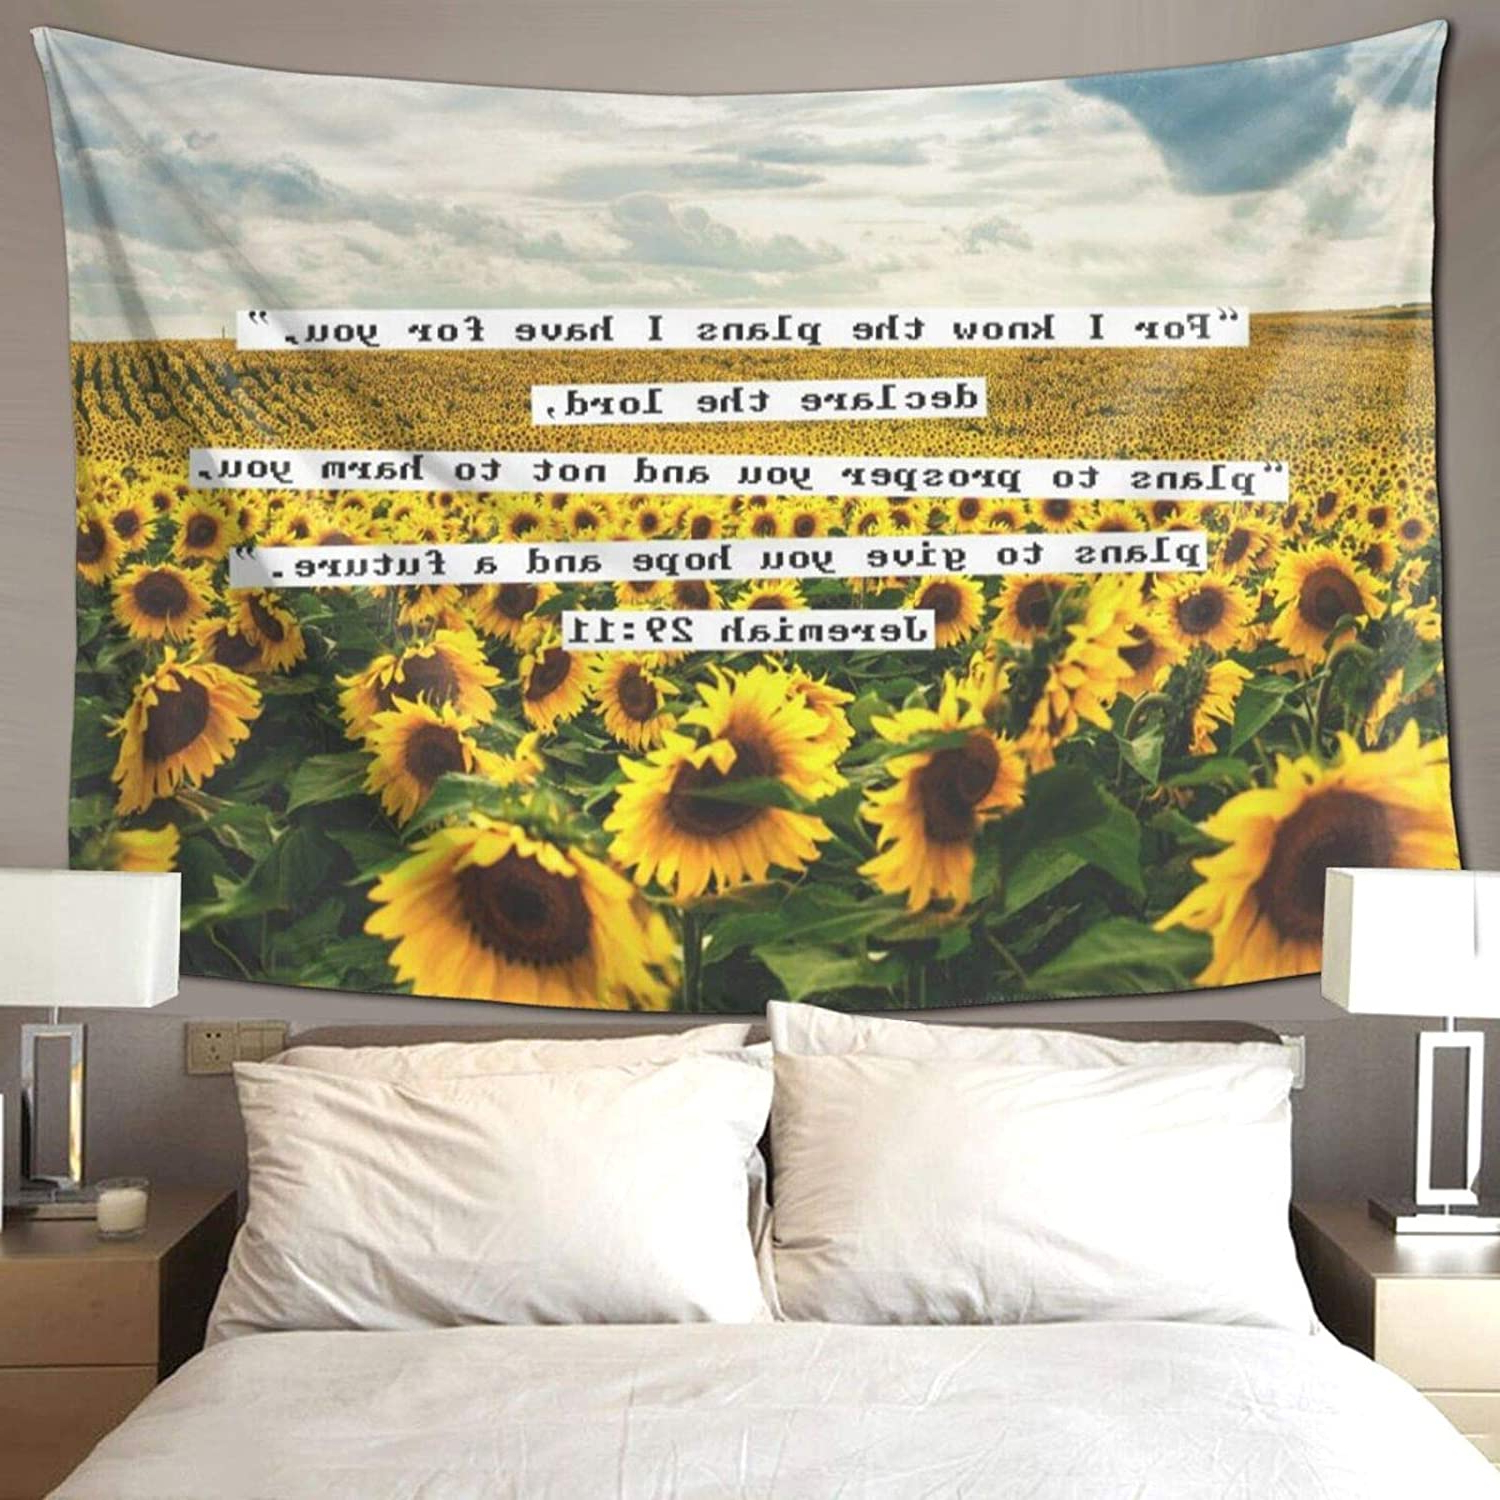 Widely Used Blended Fabric Trust In The Lord Tapestries And Wall Hangings For Hippie Art Tapestry Wall Hanging Tapestries Beautiful Sunflower Blue Sky Wall Blanket Wall Hanging Home Decor Tablecloths For Bedroom Living Room Dorm (View 5 of 20)